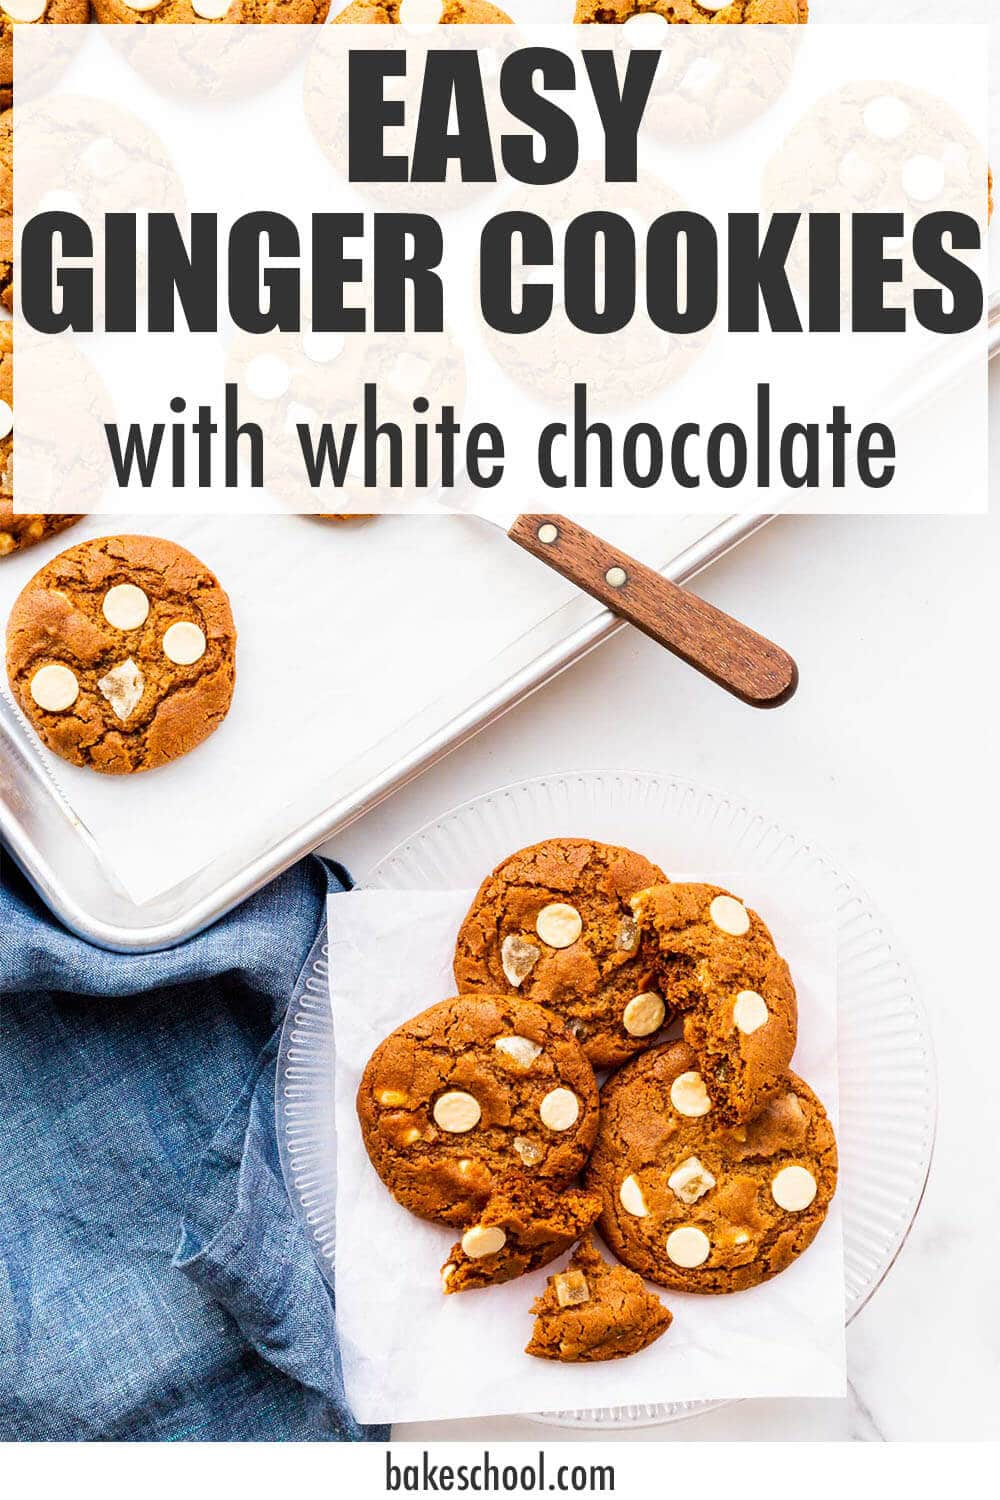 Transferring freshly baked ginger white chocolate cookies from the sheet pan to a plate.